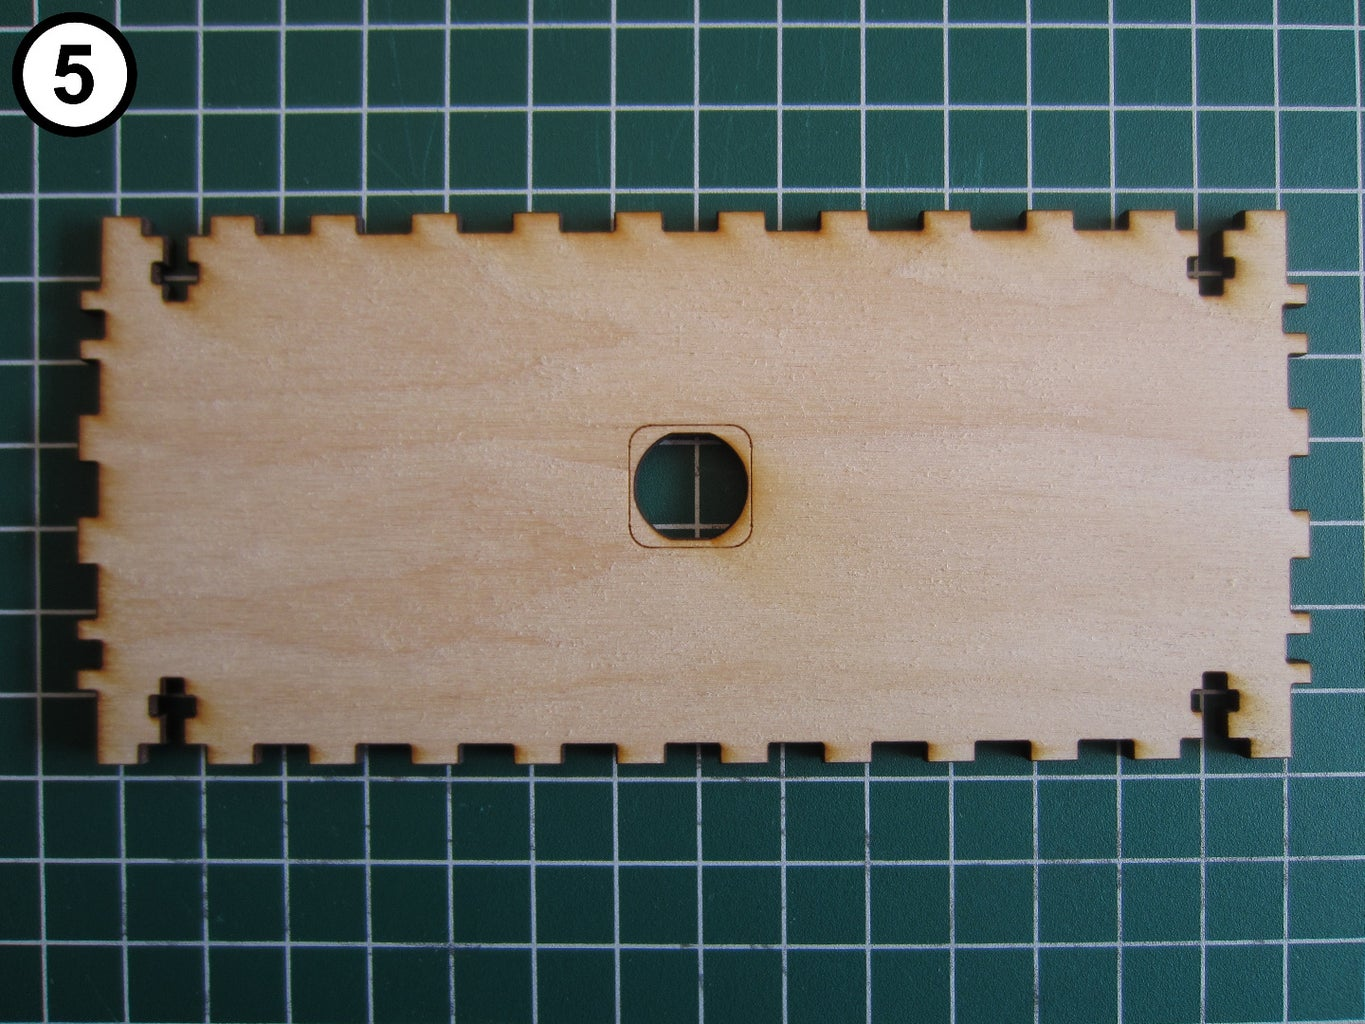 Cut the Case Parts With a Laser Cutter